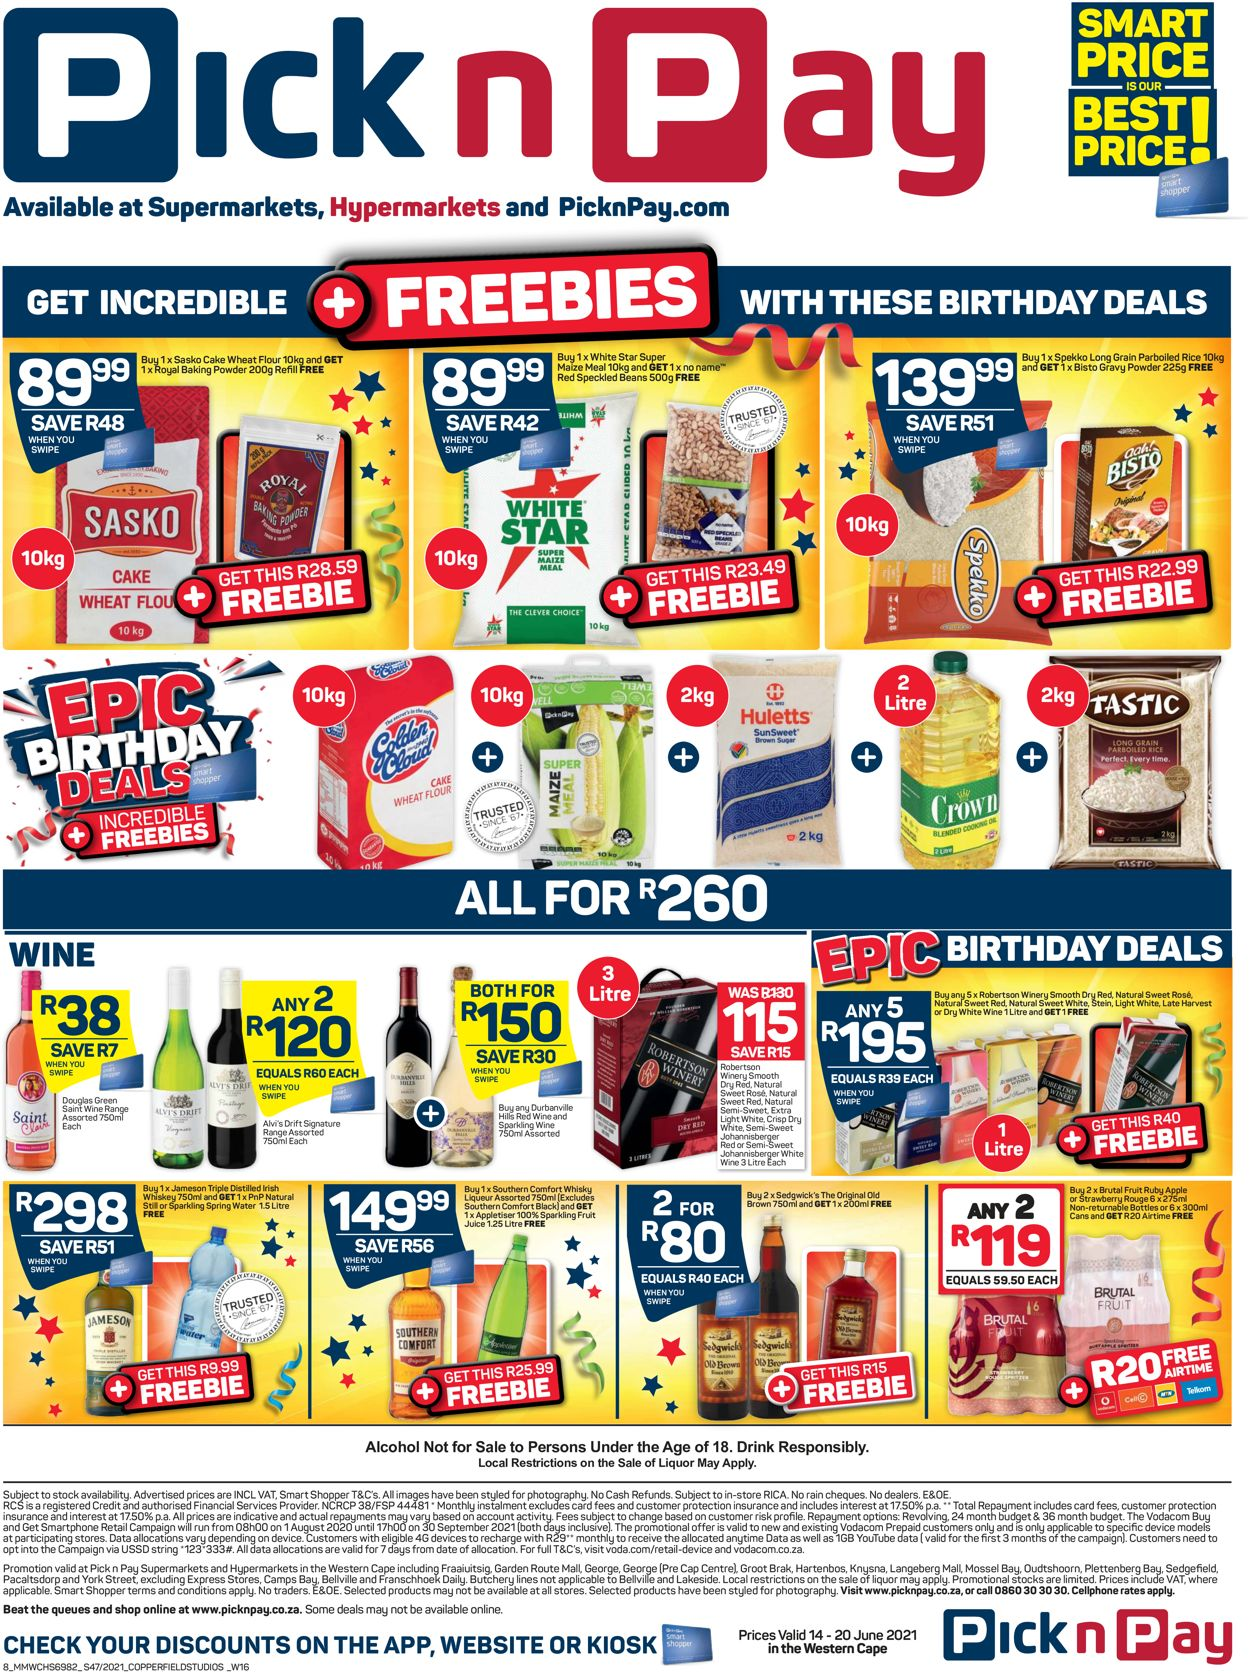 Pick n Pay Catalogue - 2021/06/14-2021/06/20 (Page 8)